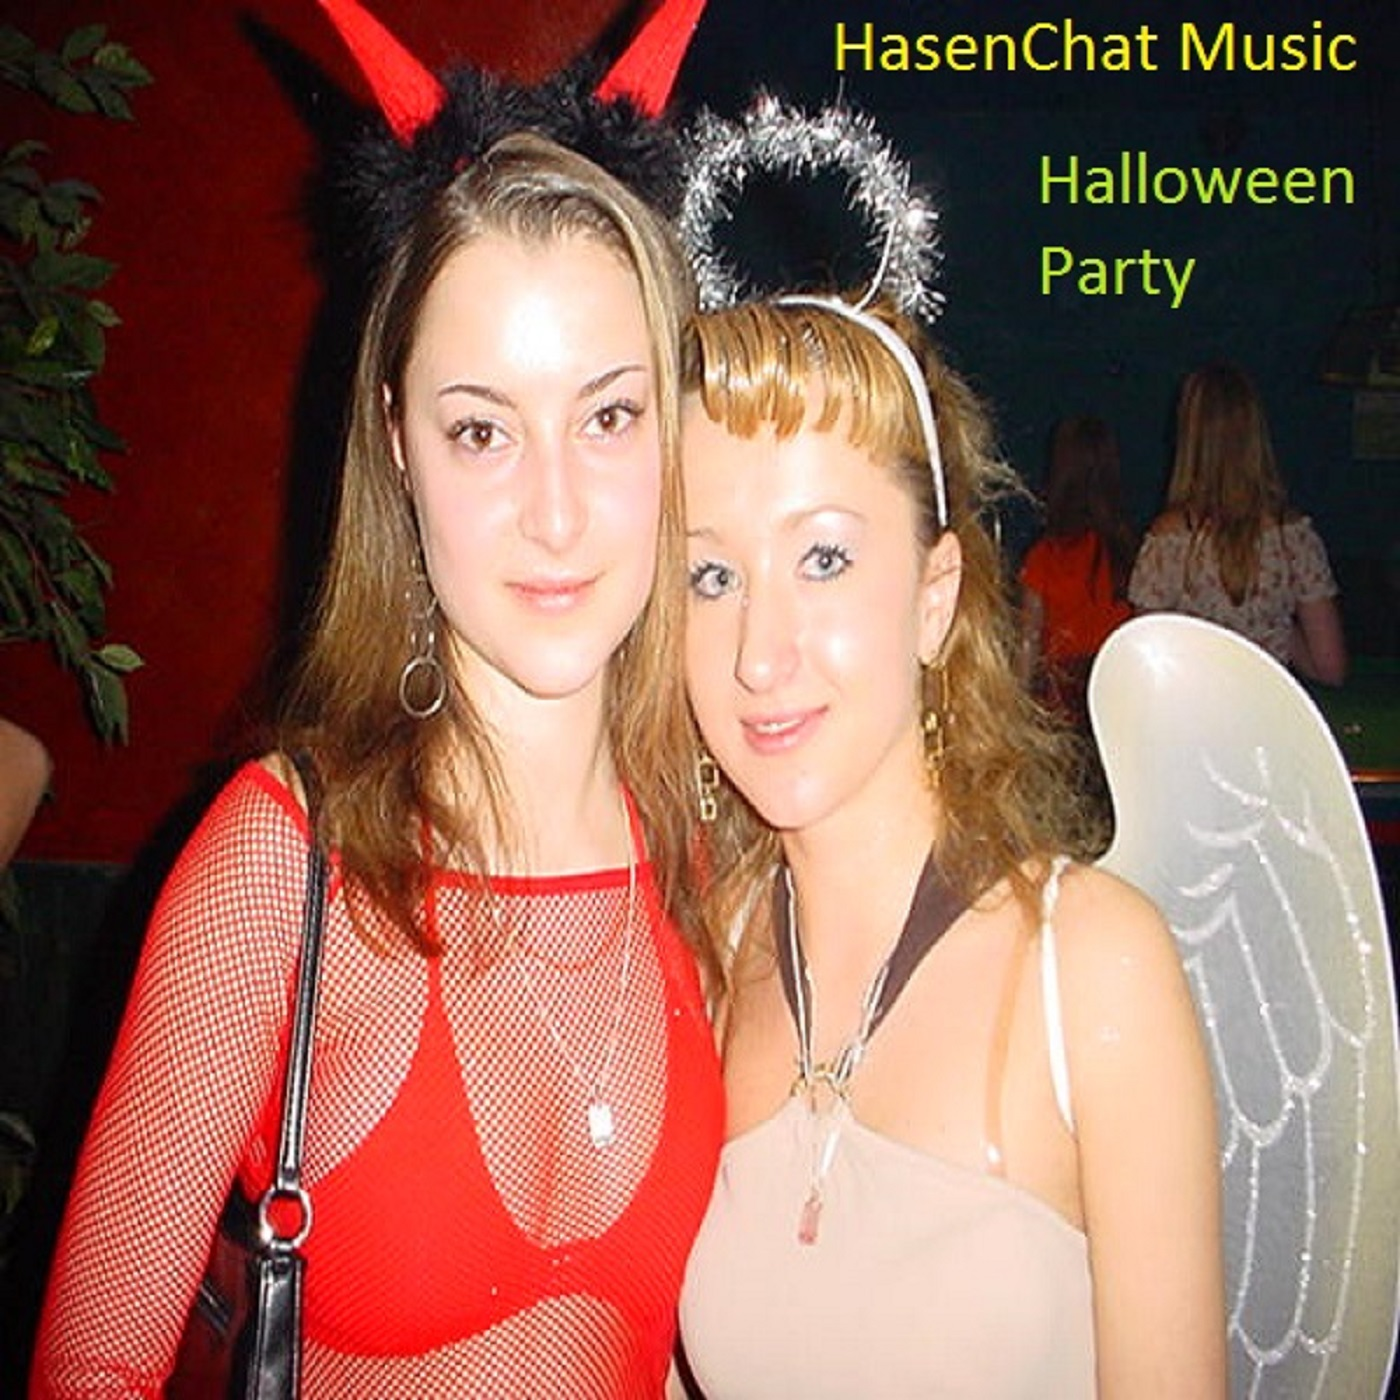 HasenChat Music - Halloween Party 1 - CD 1